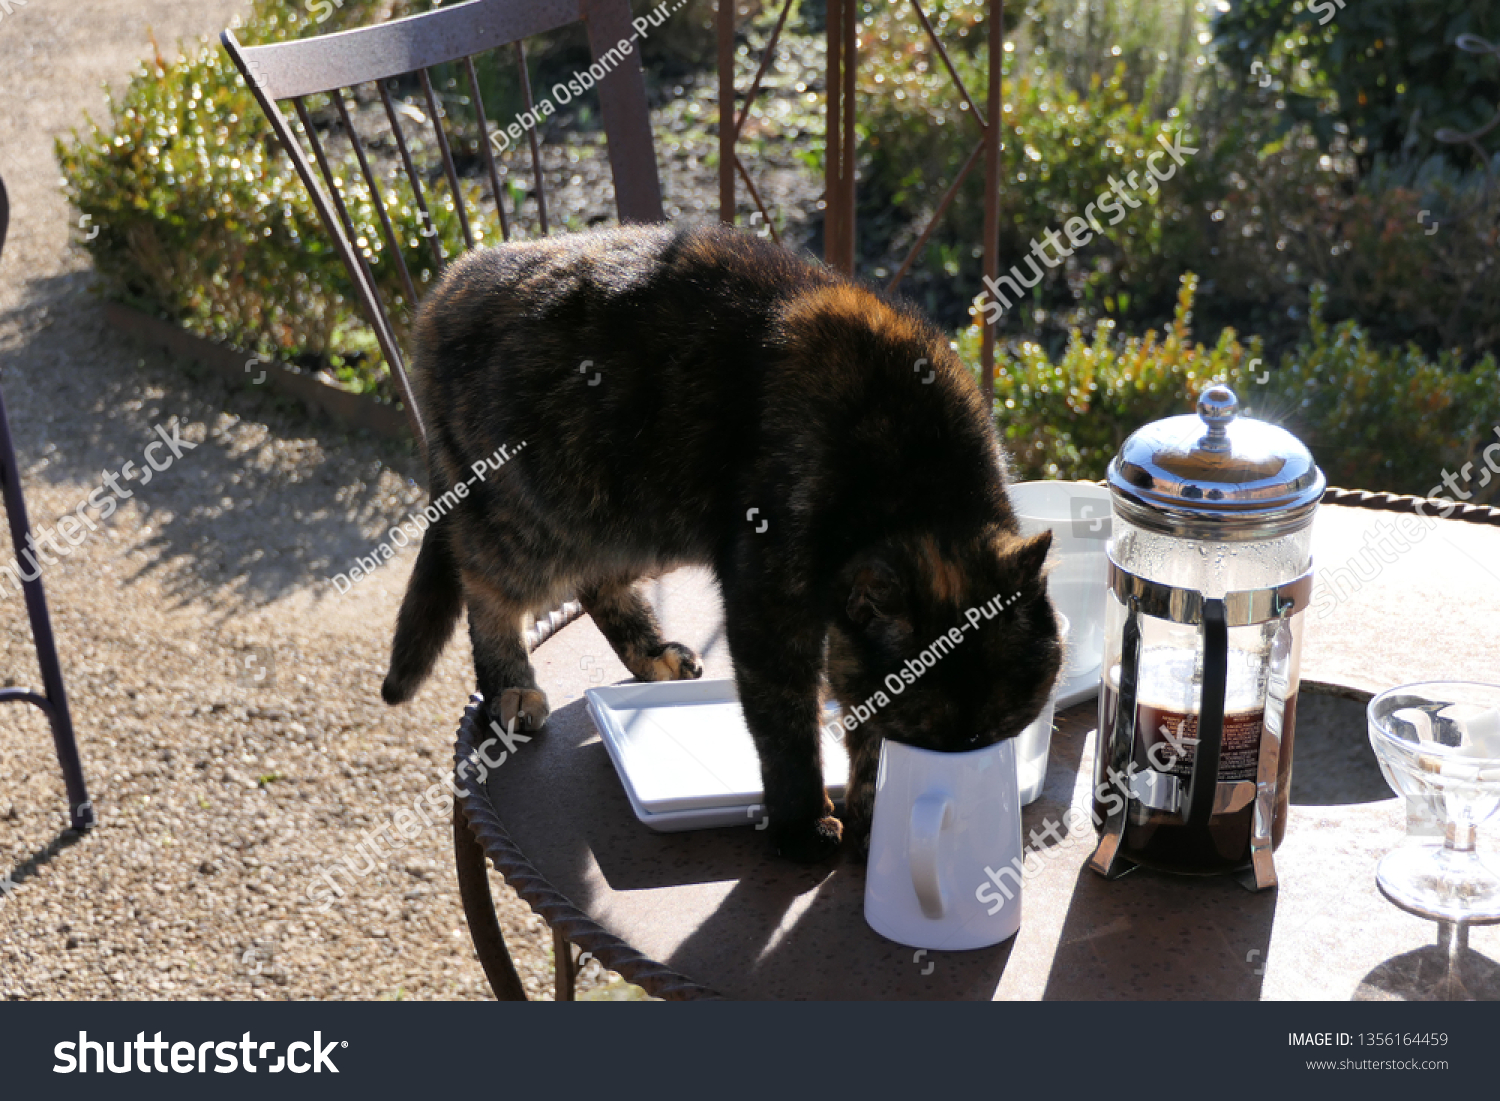 Tortoiseshell cat standing on chair drinking cream from jug on outdoor table in garden